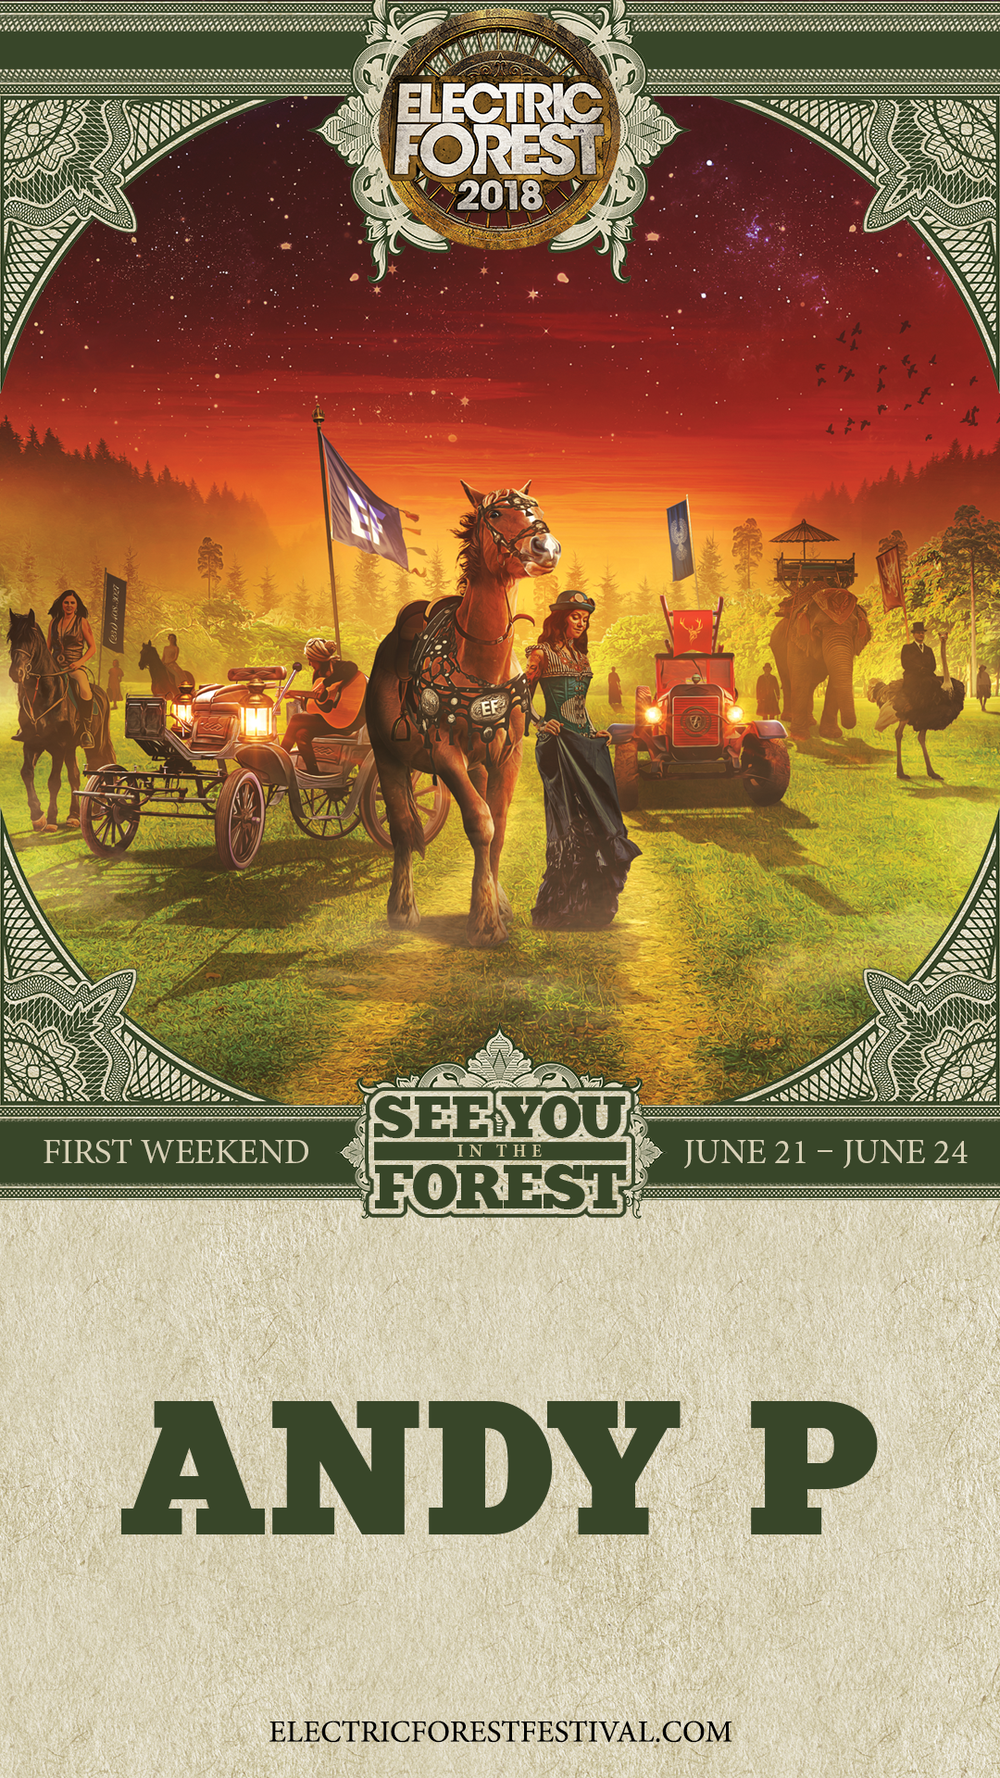 EF2018_SeeYouInTheForest_AndyP_1920x1080_W1(1).png